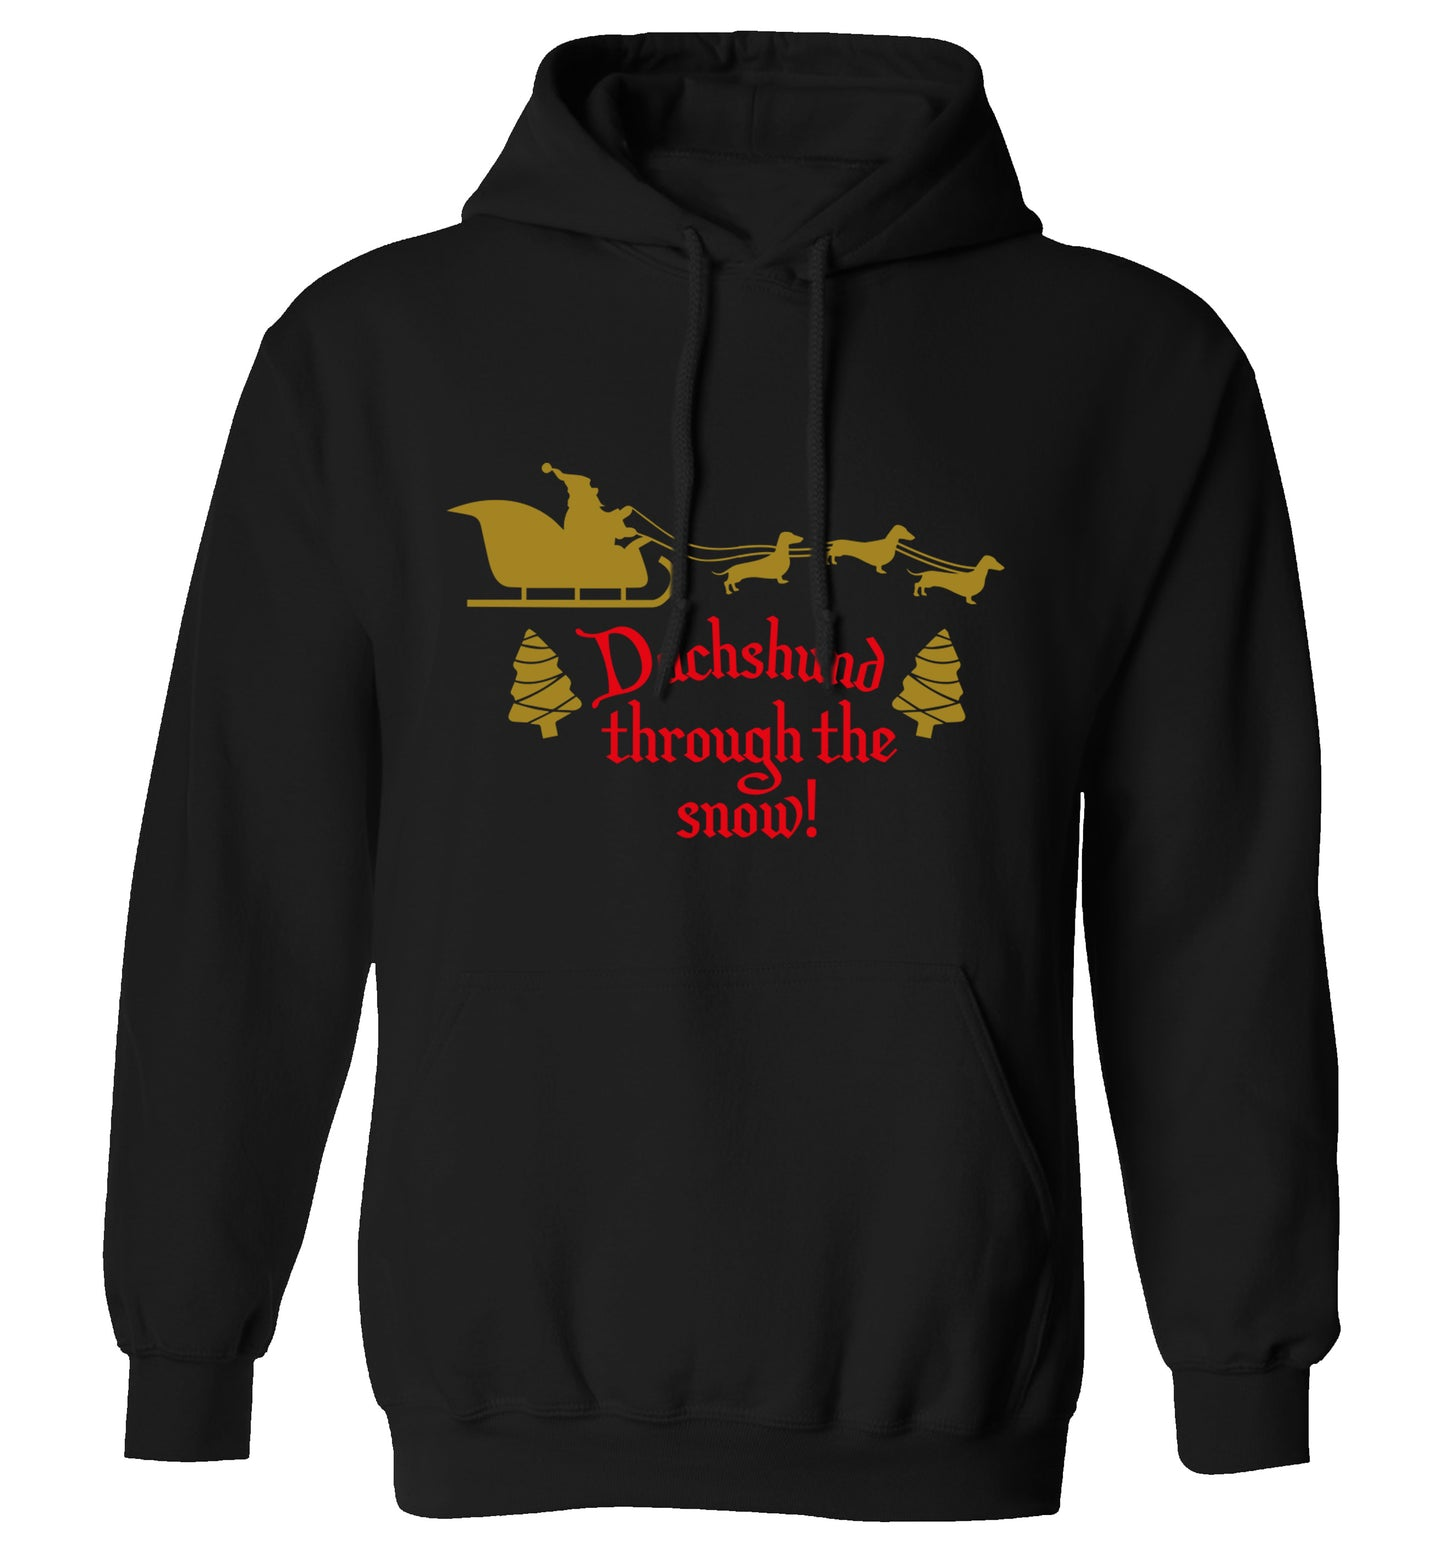 Dachshund through the snow adults unisex black hoodie 2XL